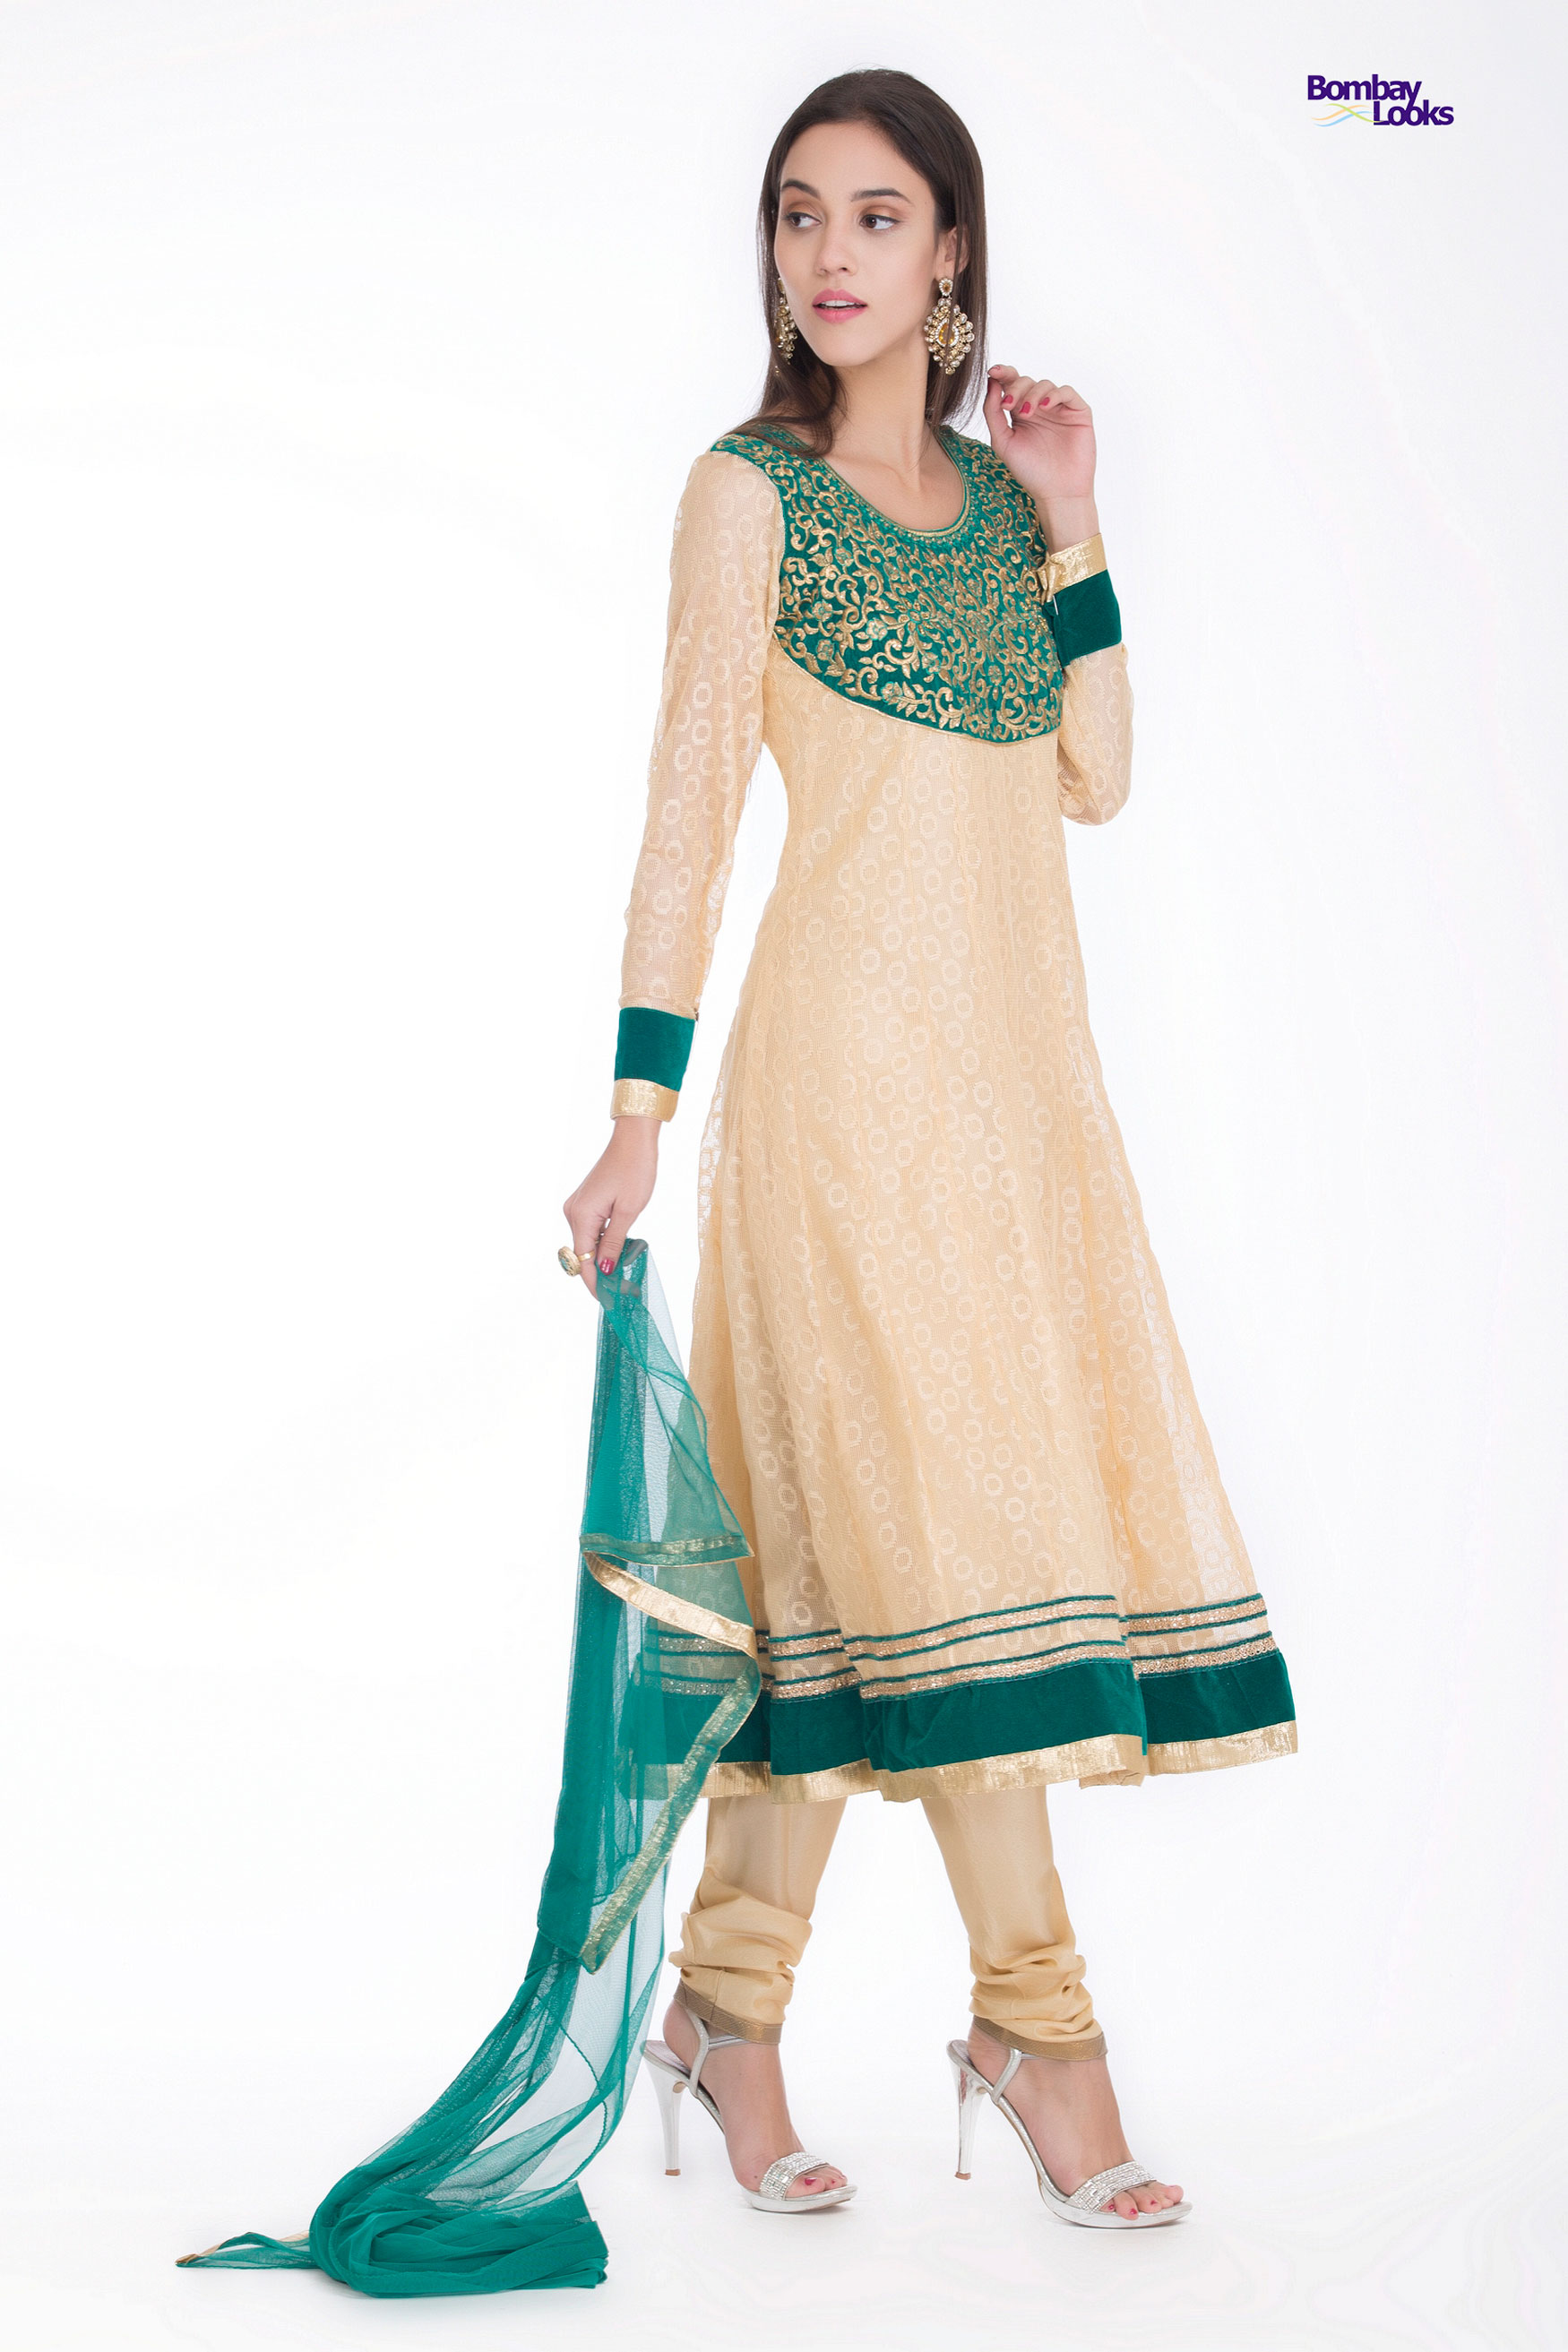 Longline soft net dress in gold and green with elegant zardosi style embroidery